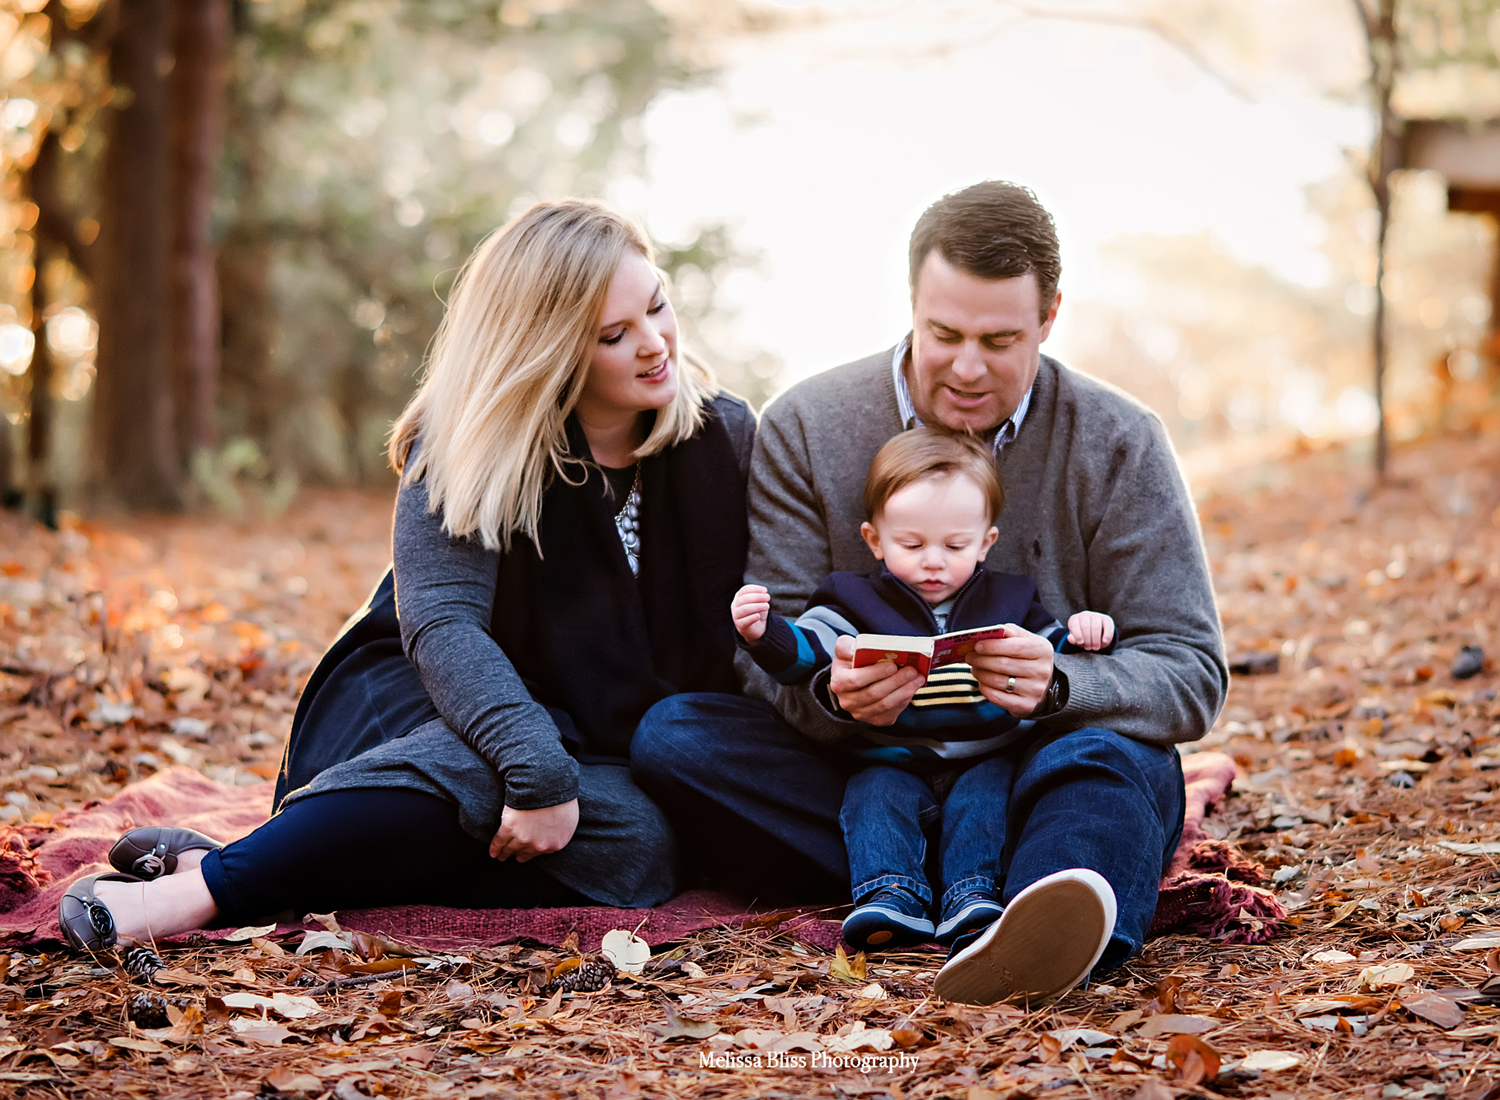 family-of-three-fall-photos-at-great-neck-park-by-melissa-bliss-photography-virginia-beach-lifestyle-photographer.jpg